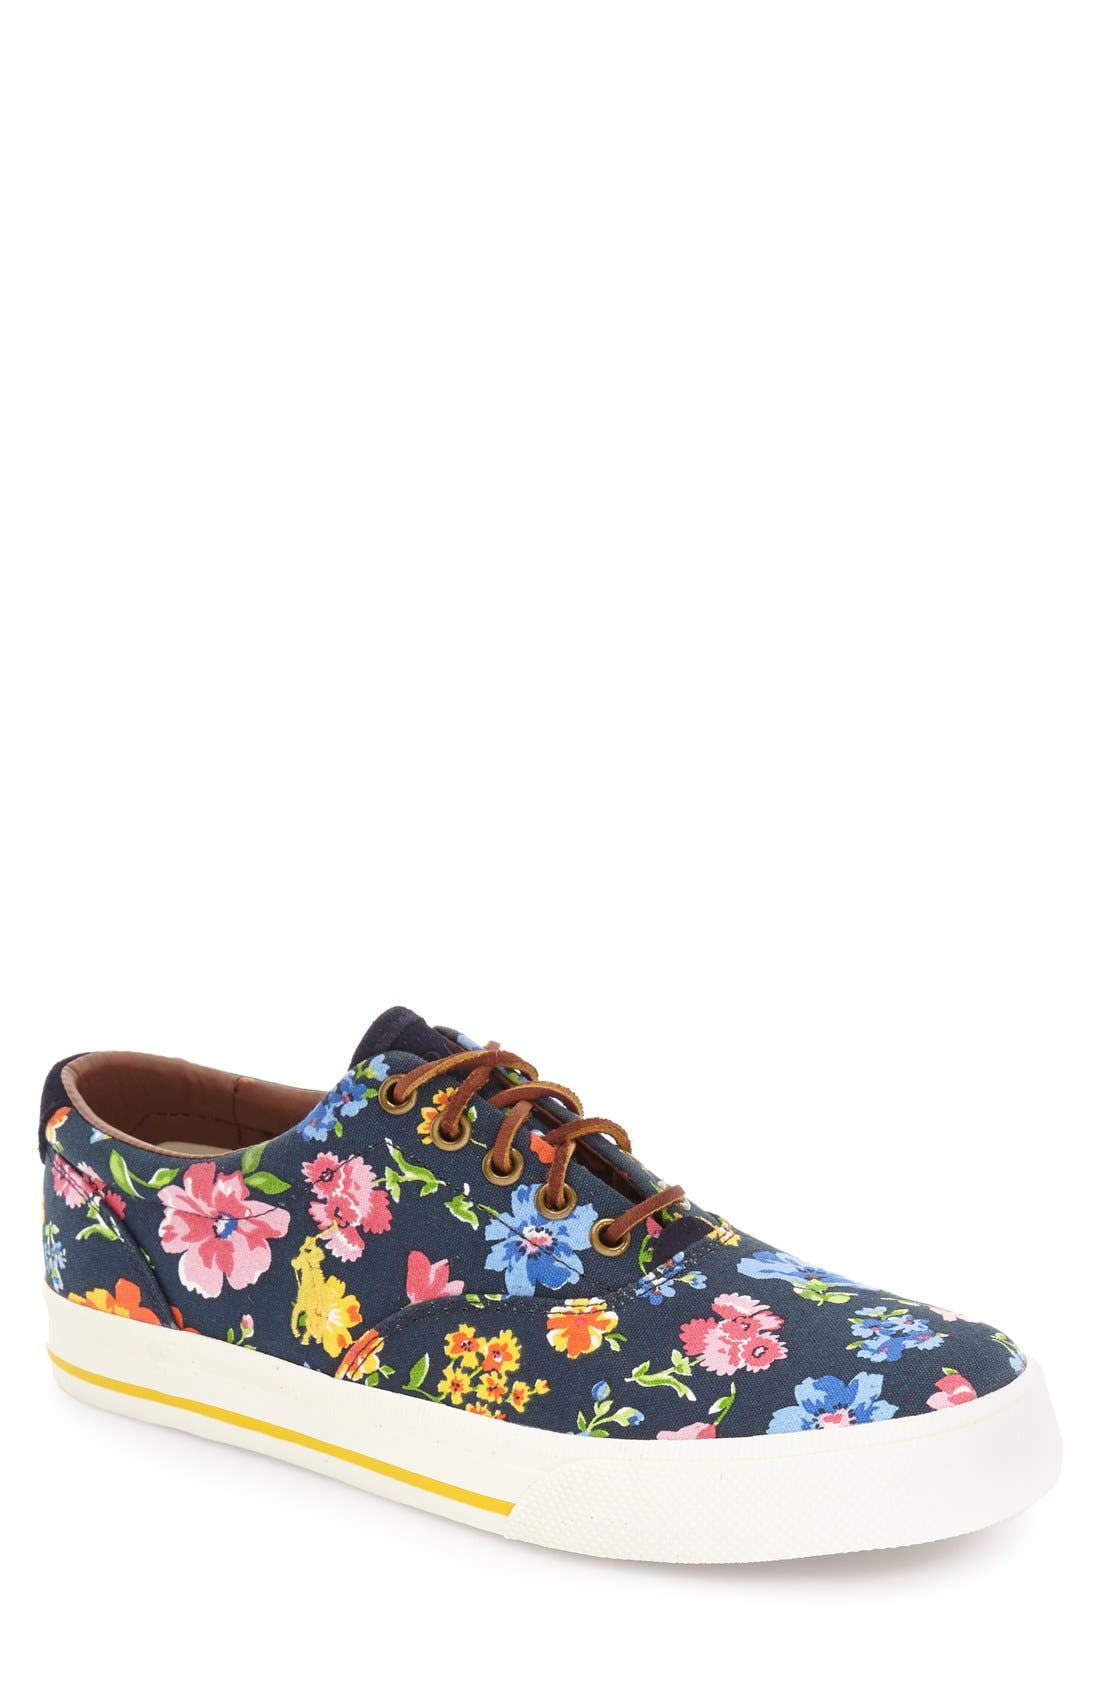 'Vaughn' Sneaker,                         Main,                         color, Navy Multi